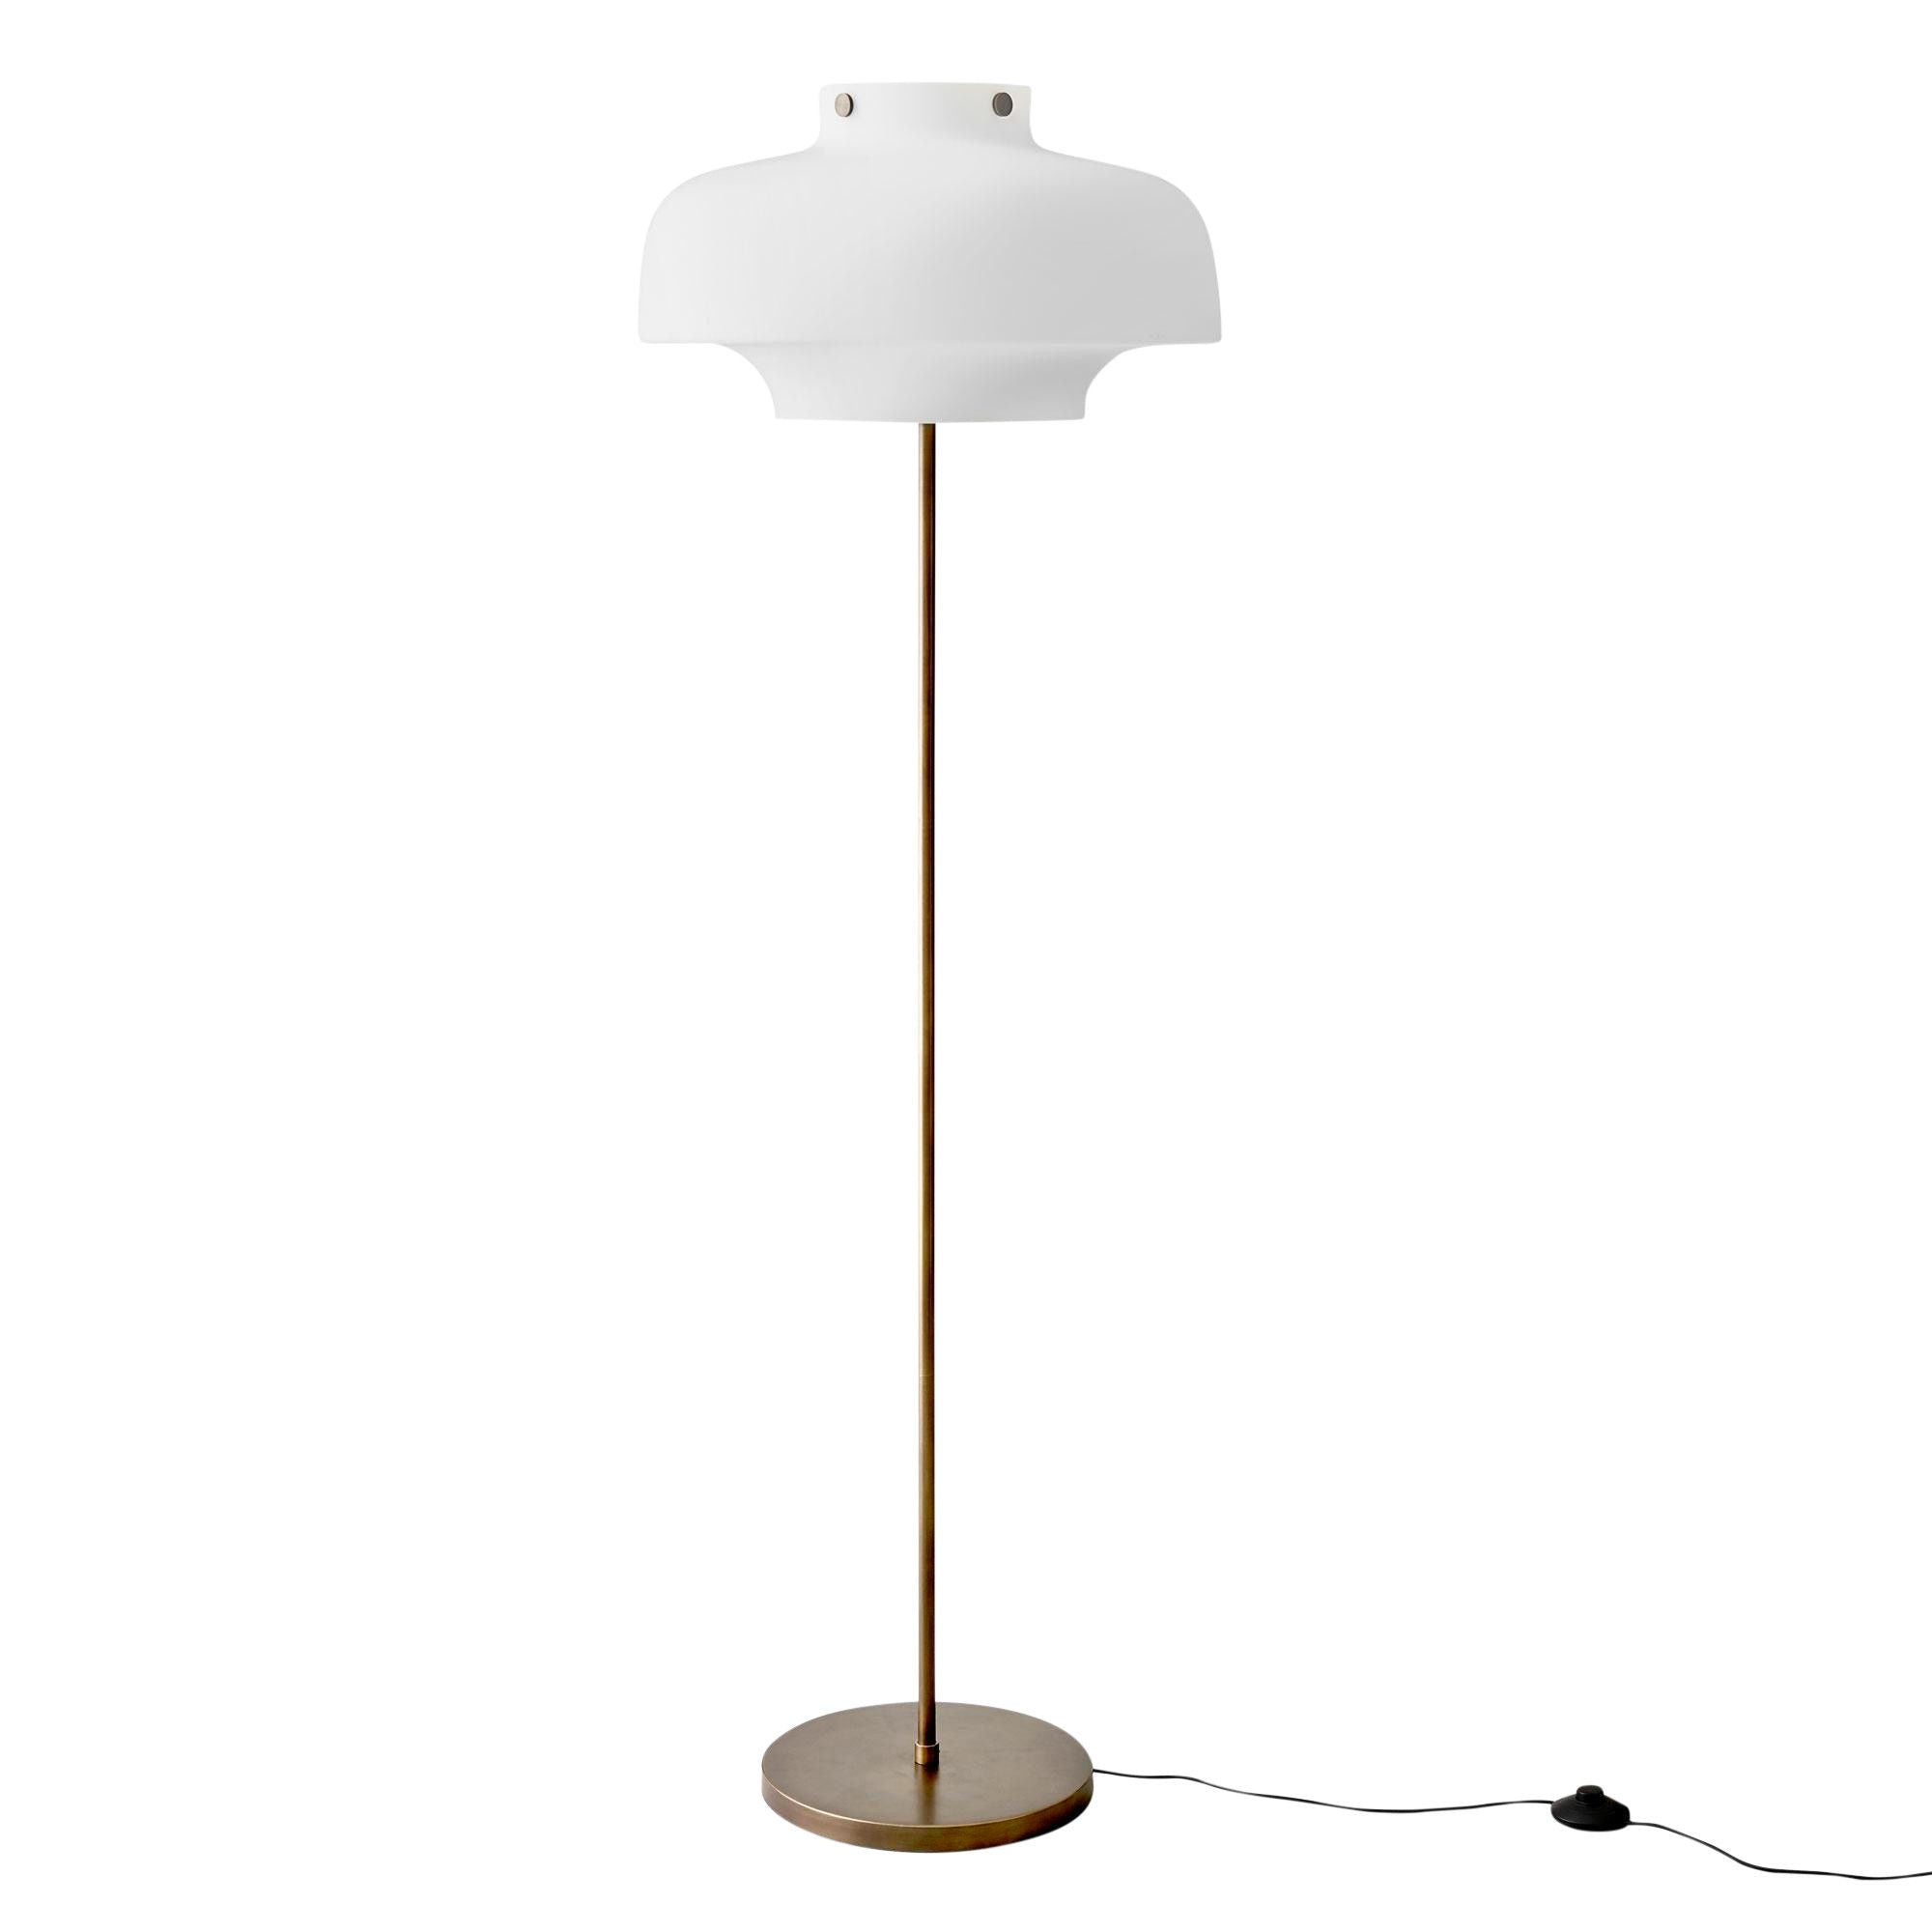 &Tradition SC14 Copenhagen floor lamp